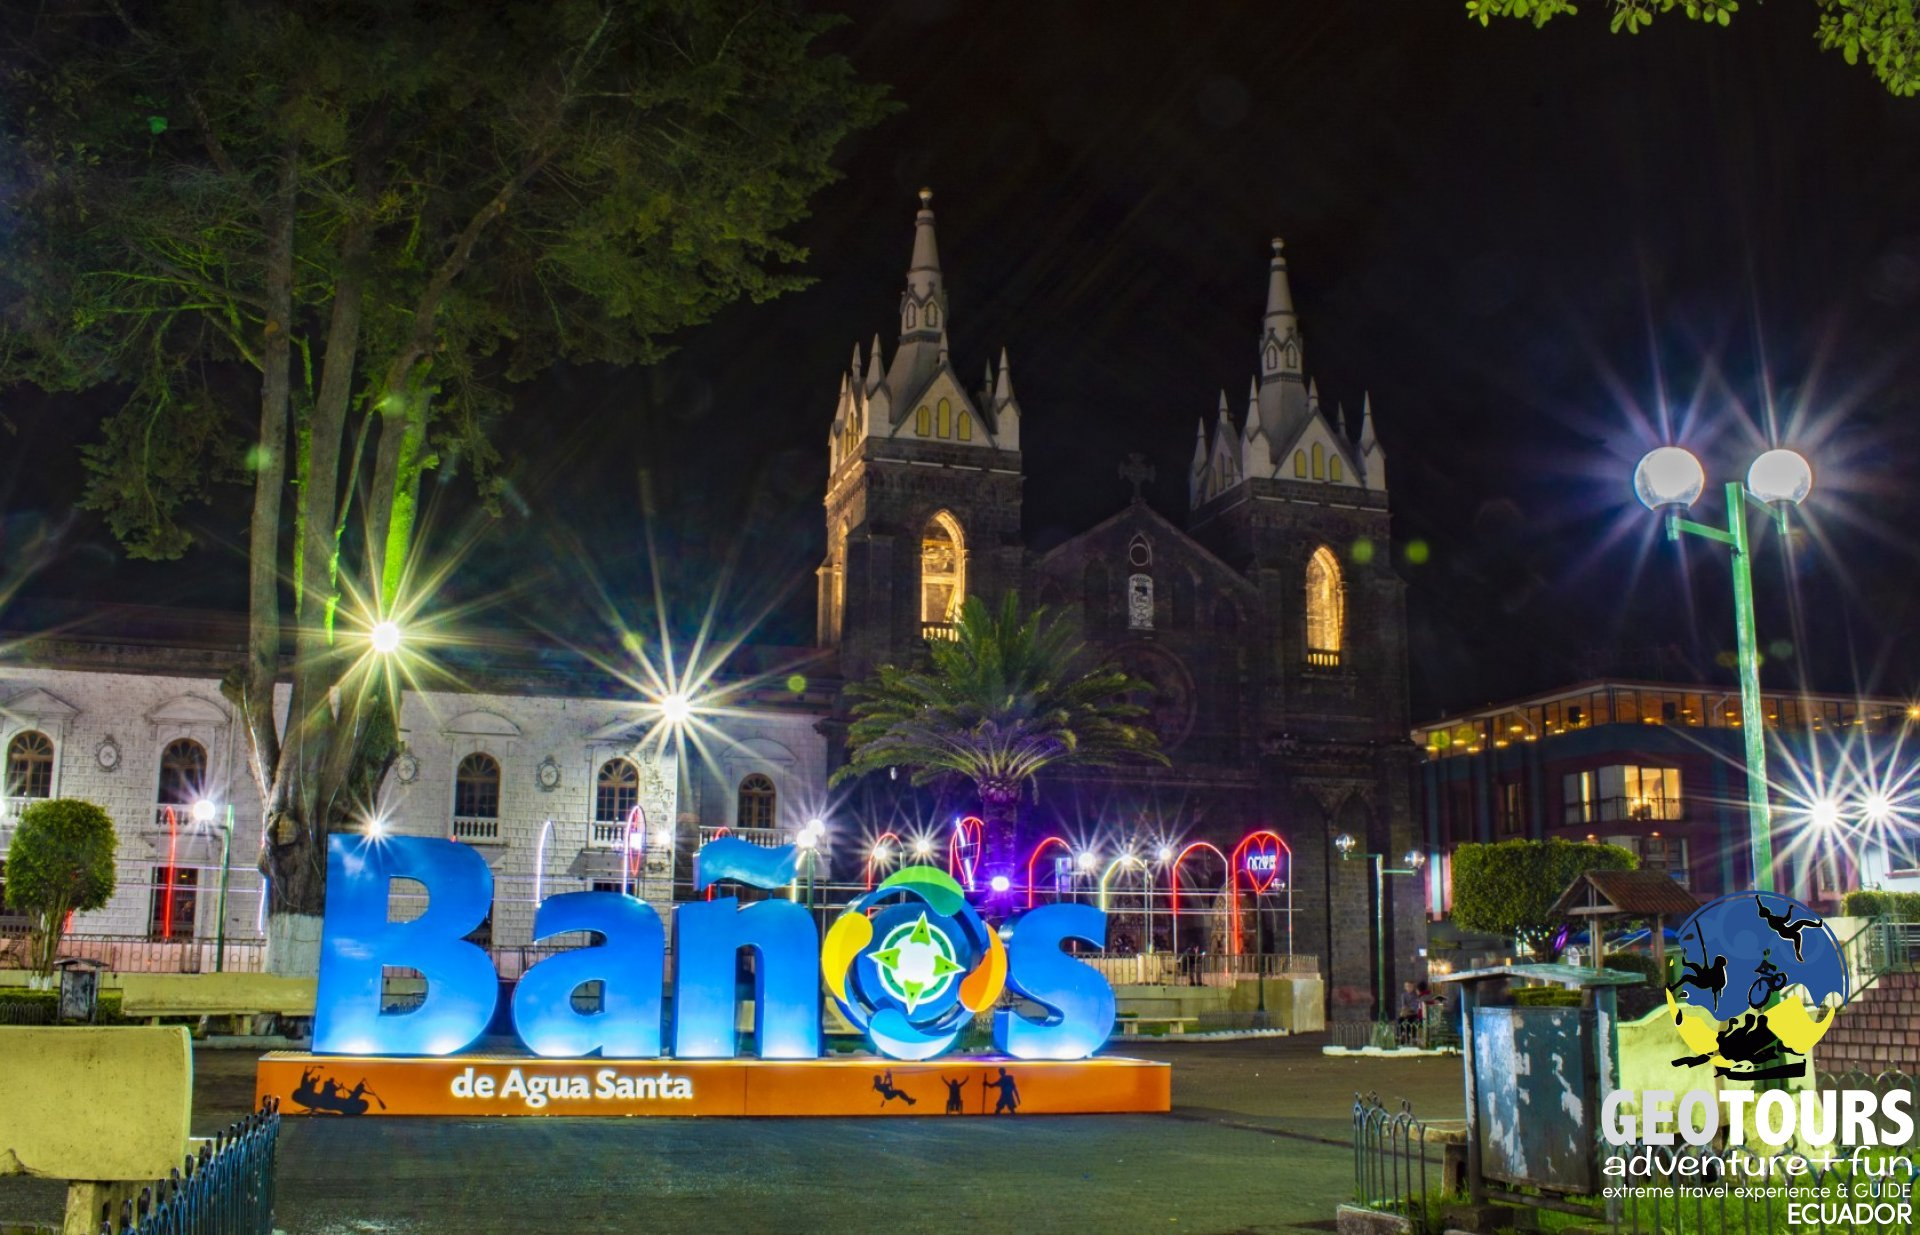 How to get to Baños from Quito?